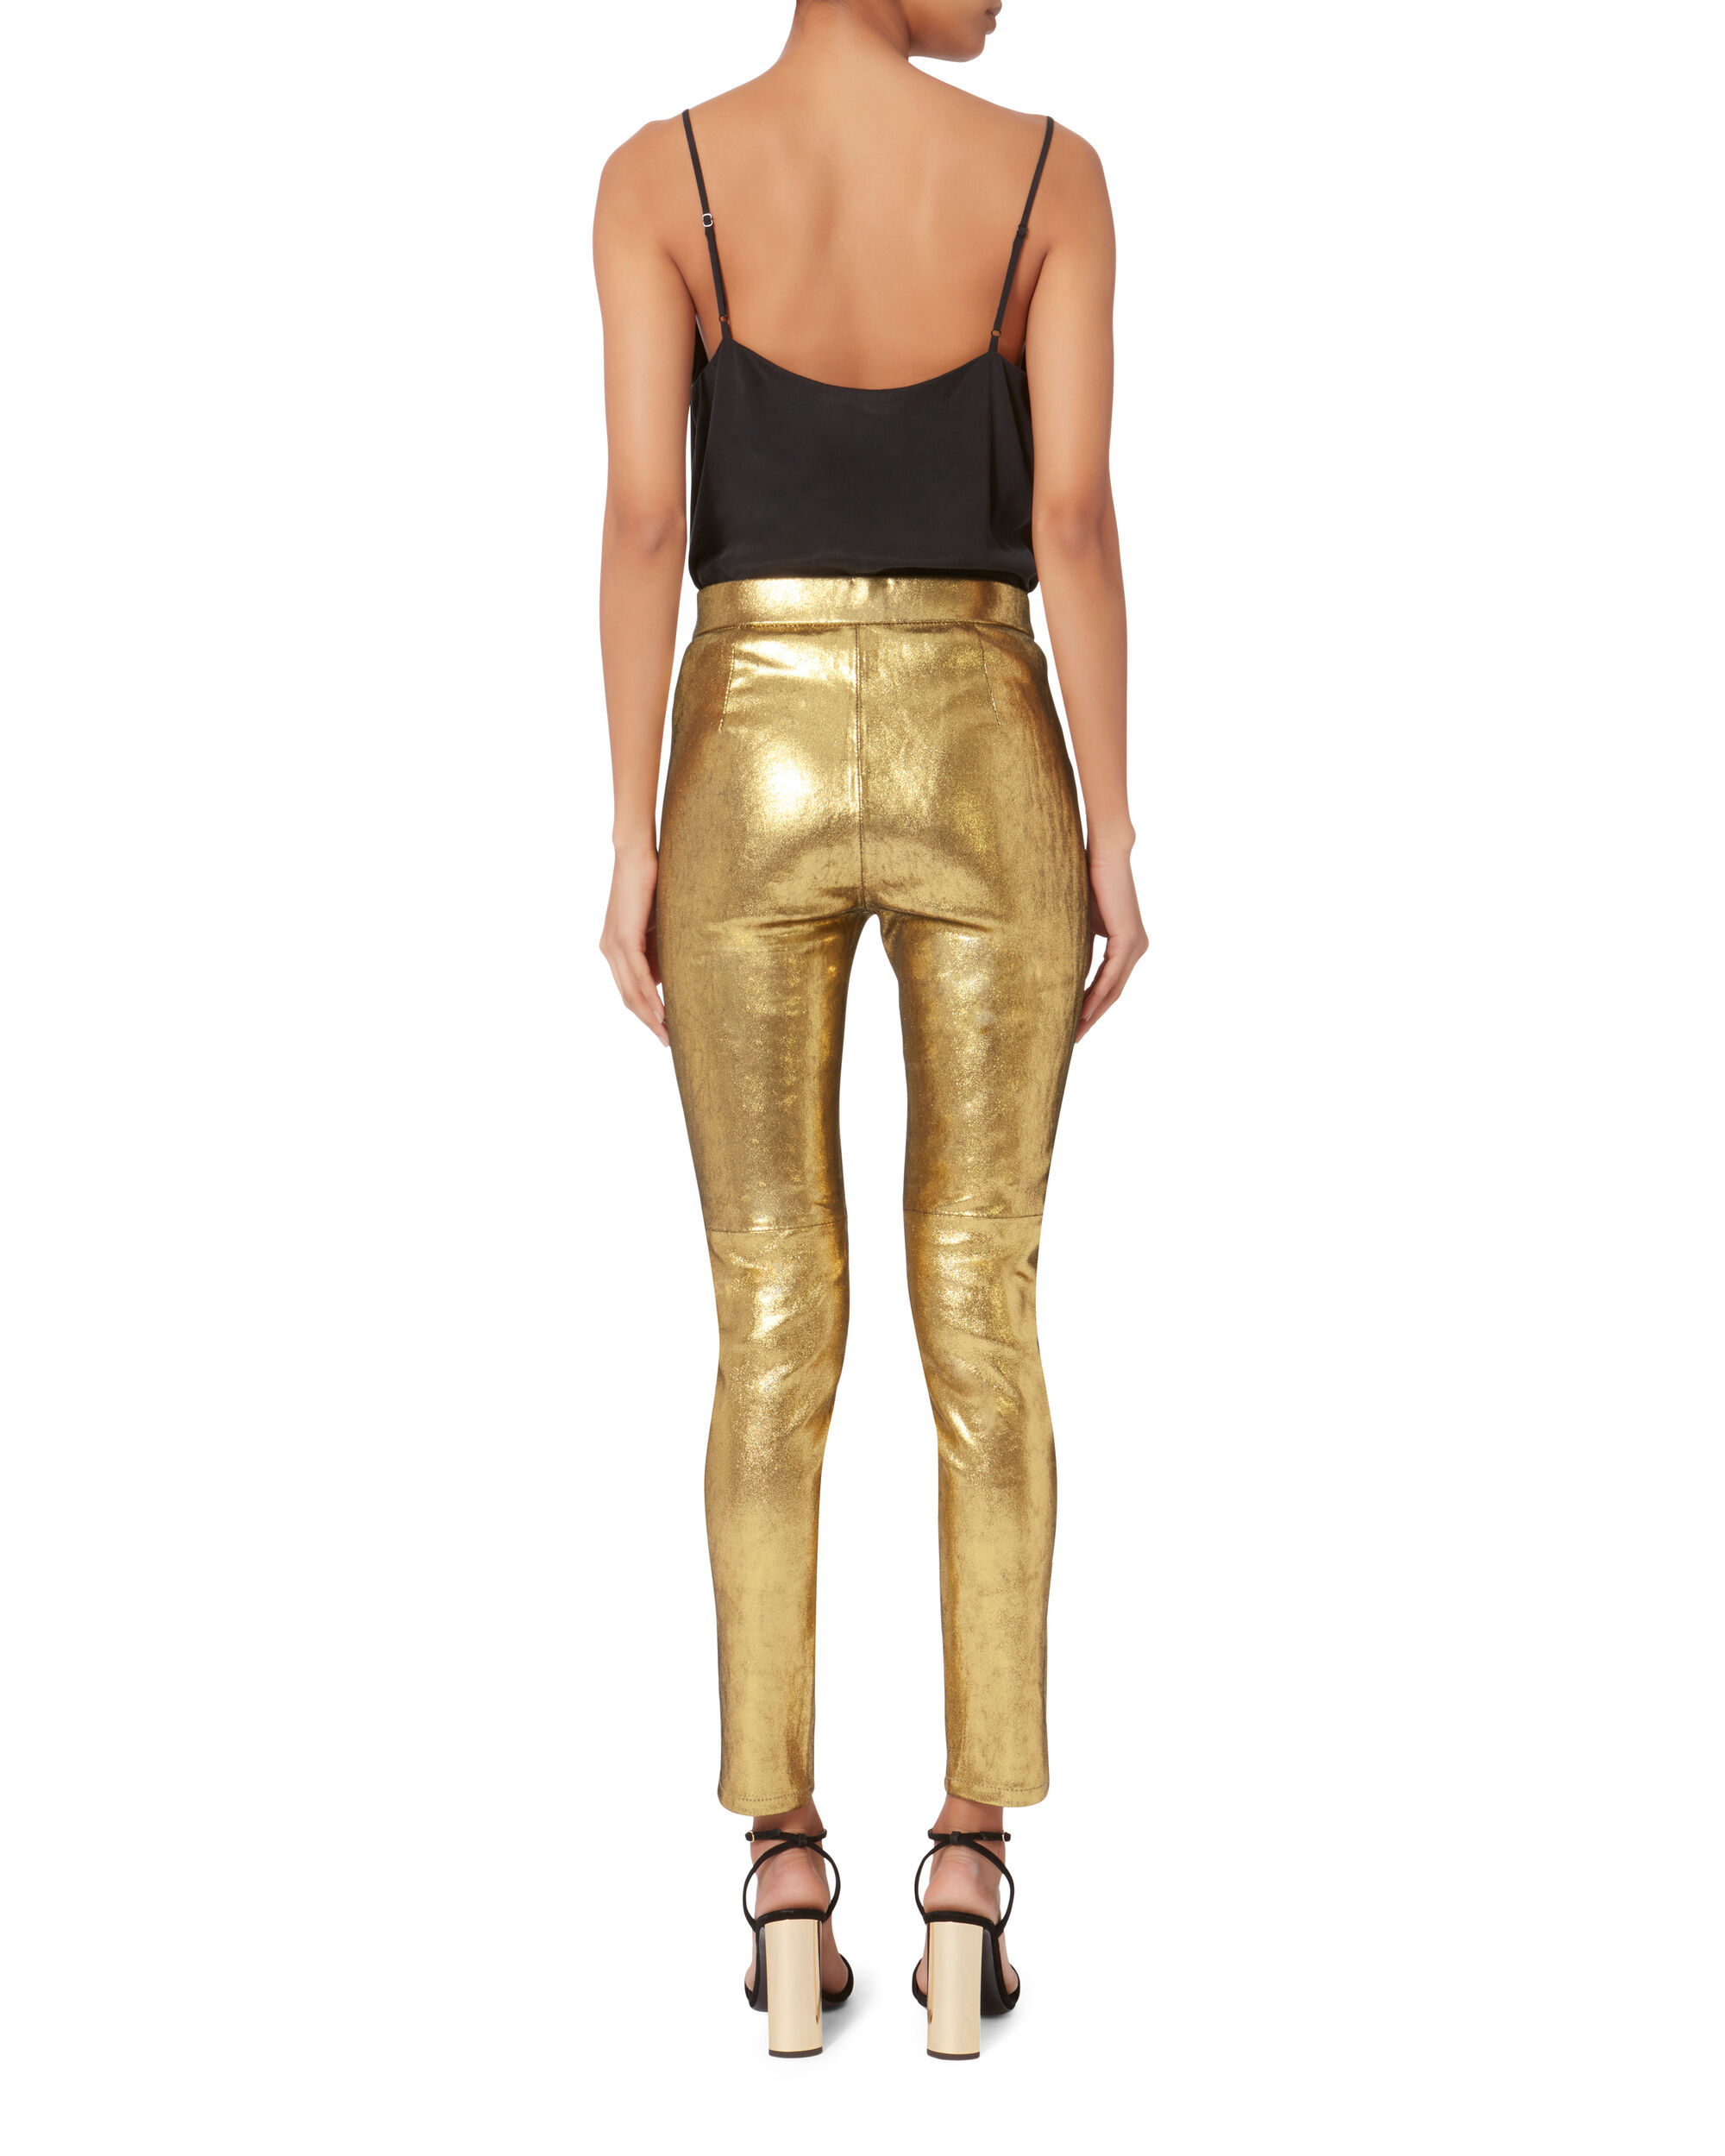 Hartley Stretch Gold Leather Leggings, GOLD, hi-res